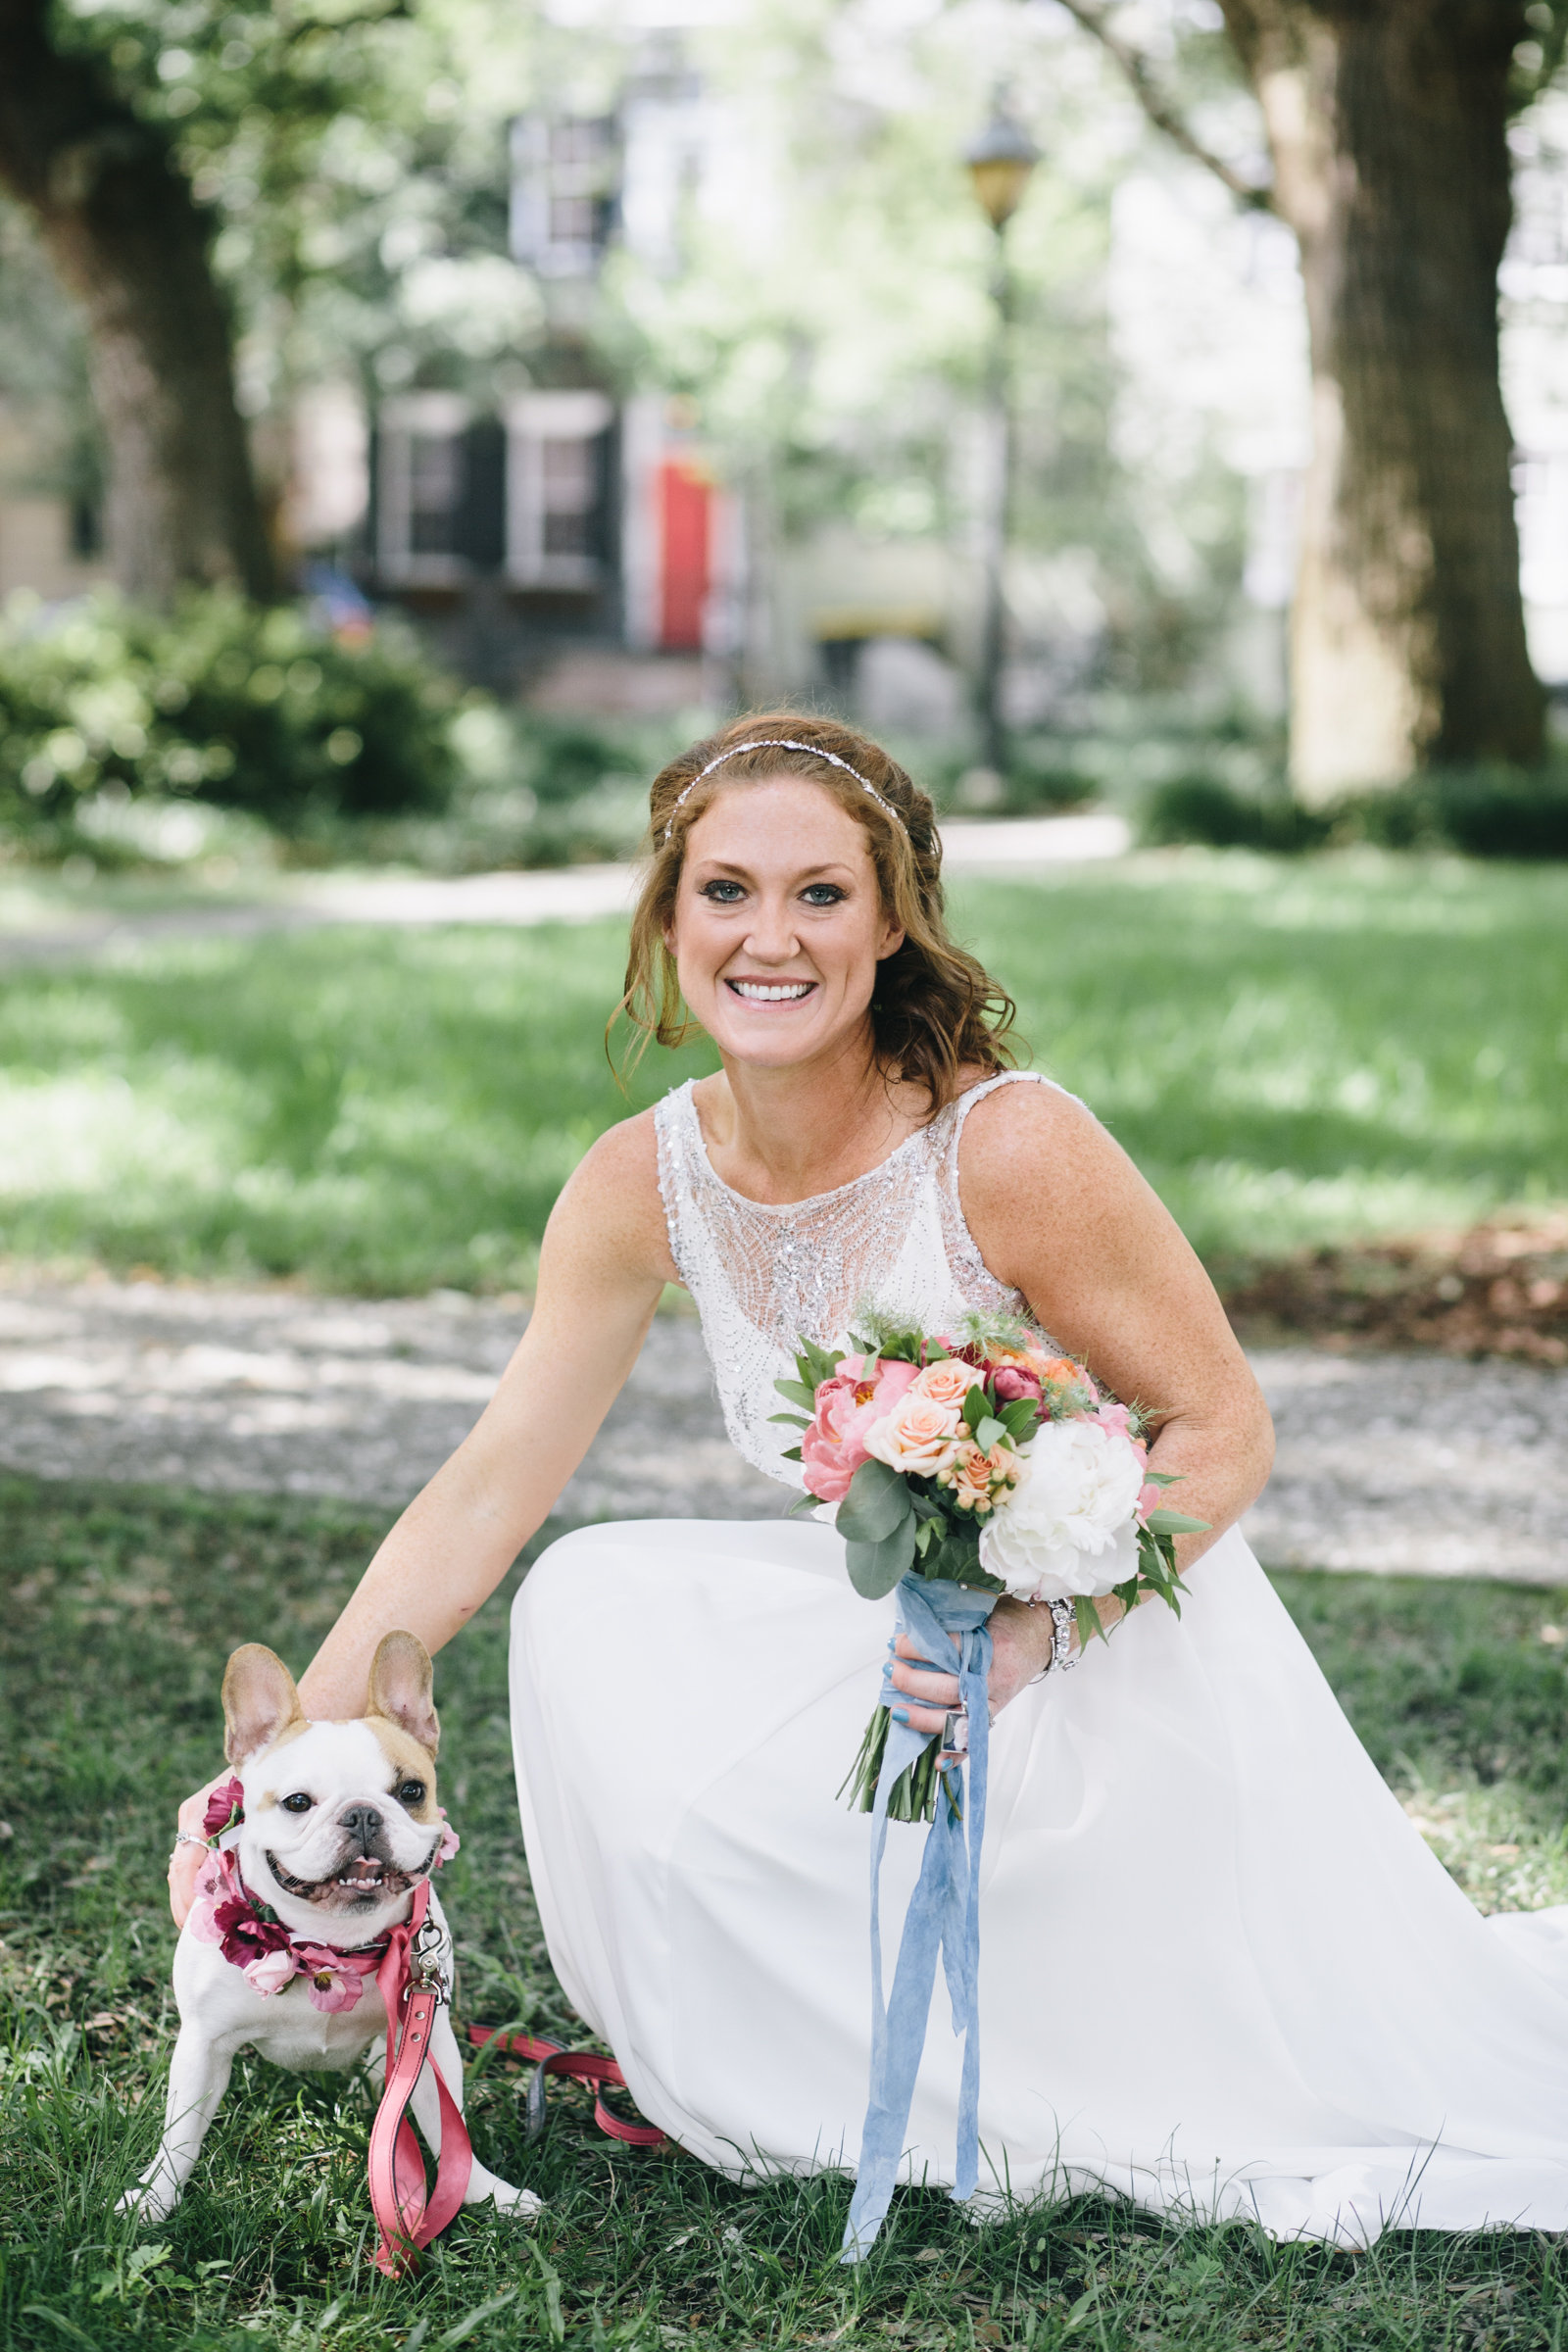 mackensey-alexander-photography-ivory-and-beau-bridal-boutique-from-this-day-forward-wedding-planning-sarah-seven-gwen-savannah-bridal-boutique-savannah-wedding-dresses-savannah-bridal-boutique-savannah-wedding-planner-savannah-weddings-18.jpg